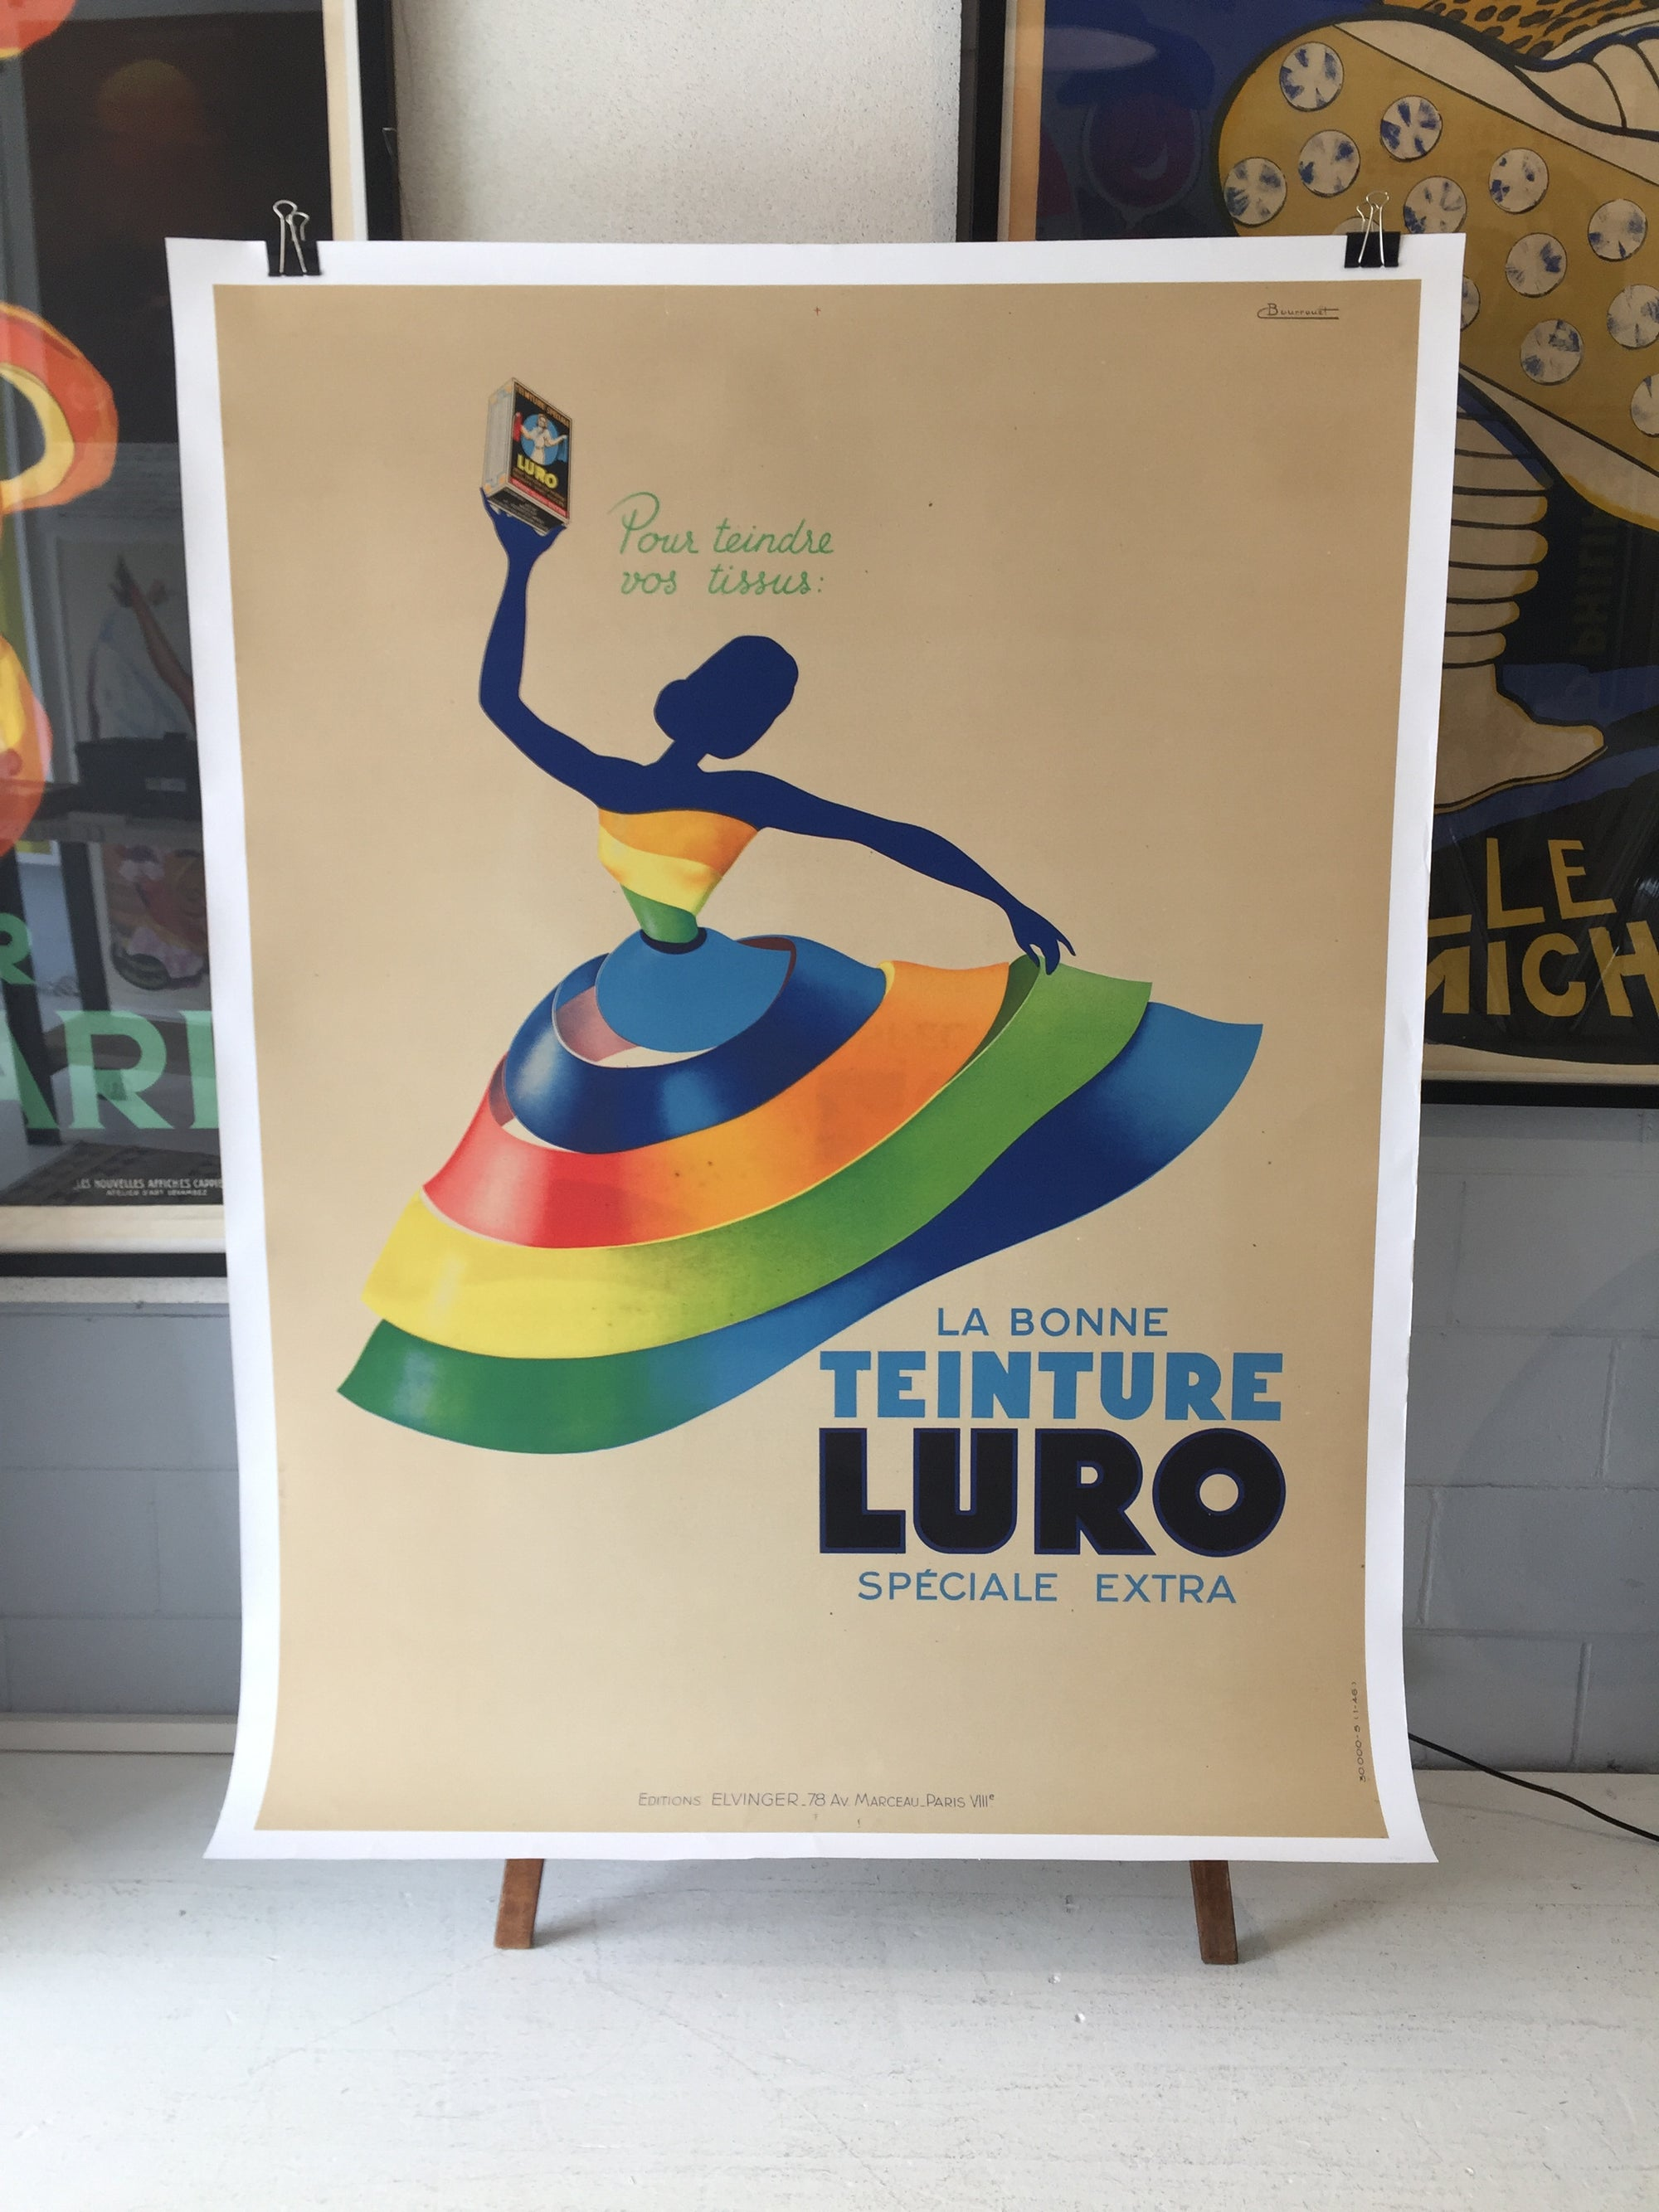 Luro by Bourrouet